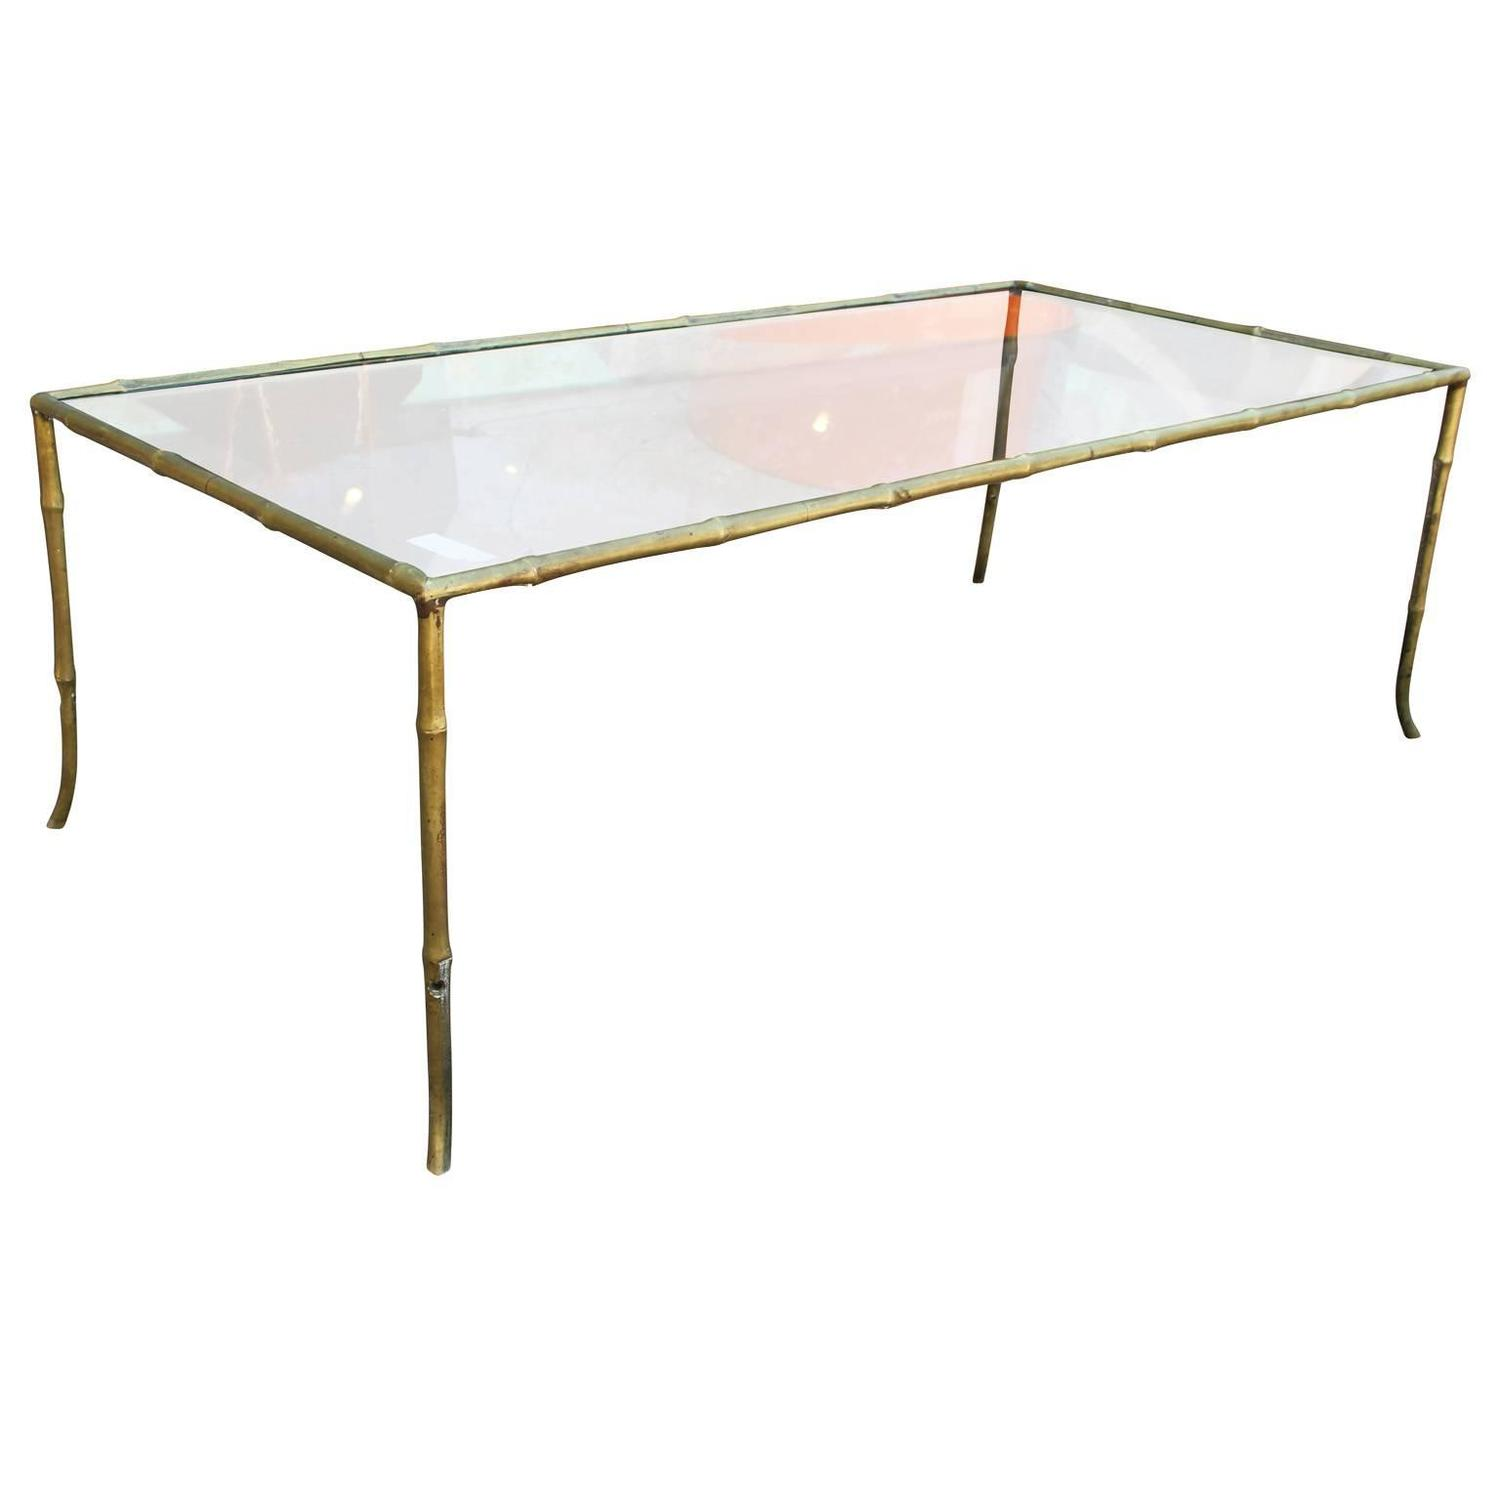 Elegant Brass And Glass Coffee Table: Elegant Brass And Glass Faux Bamboo Coffee Table For Sale